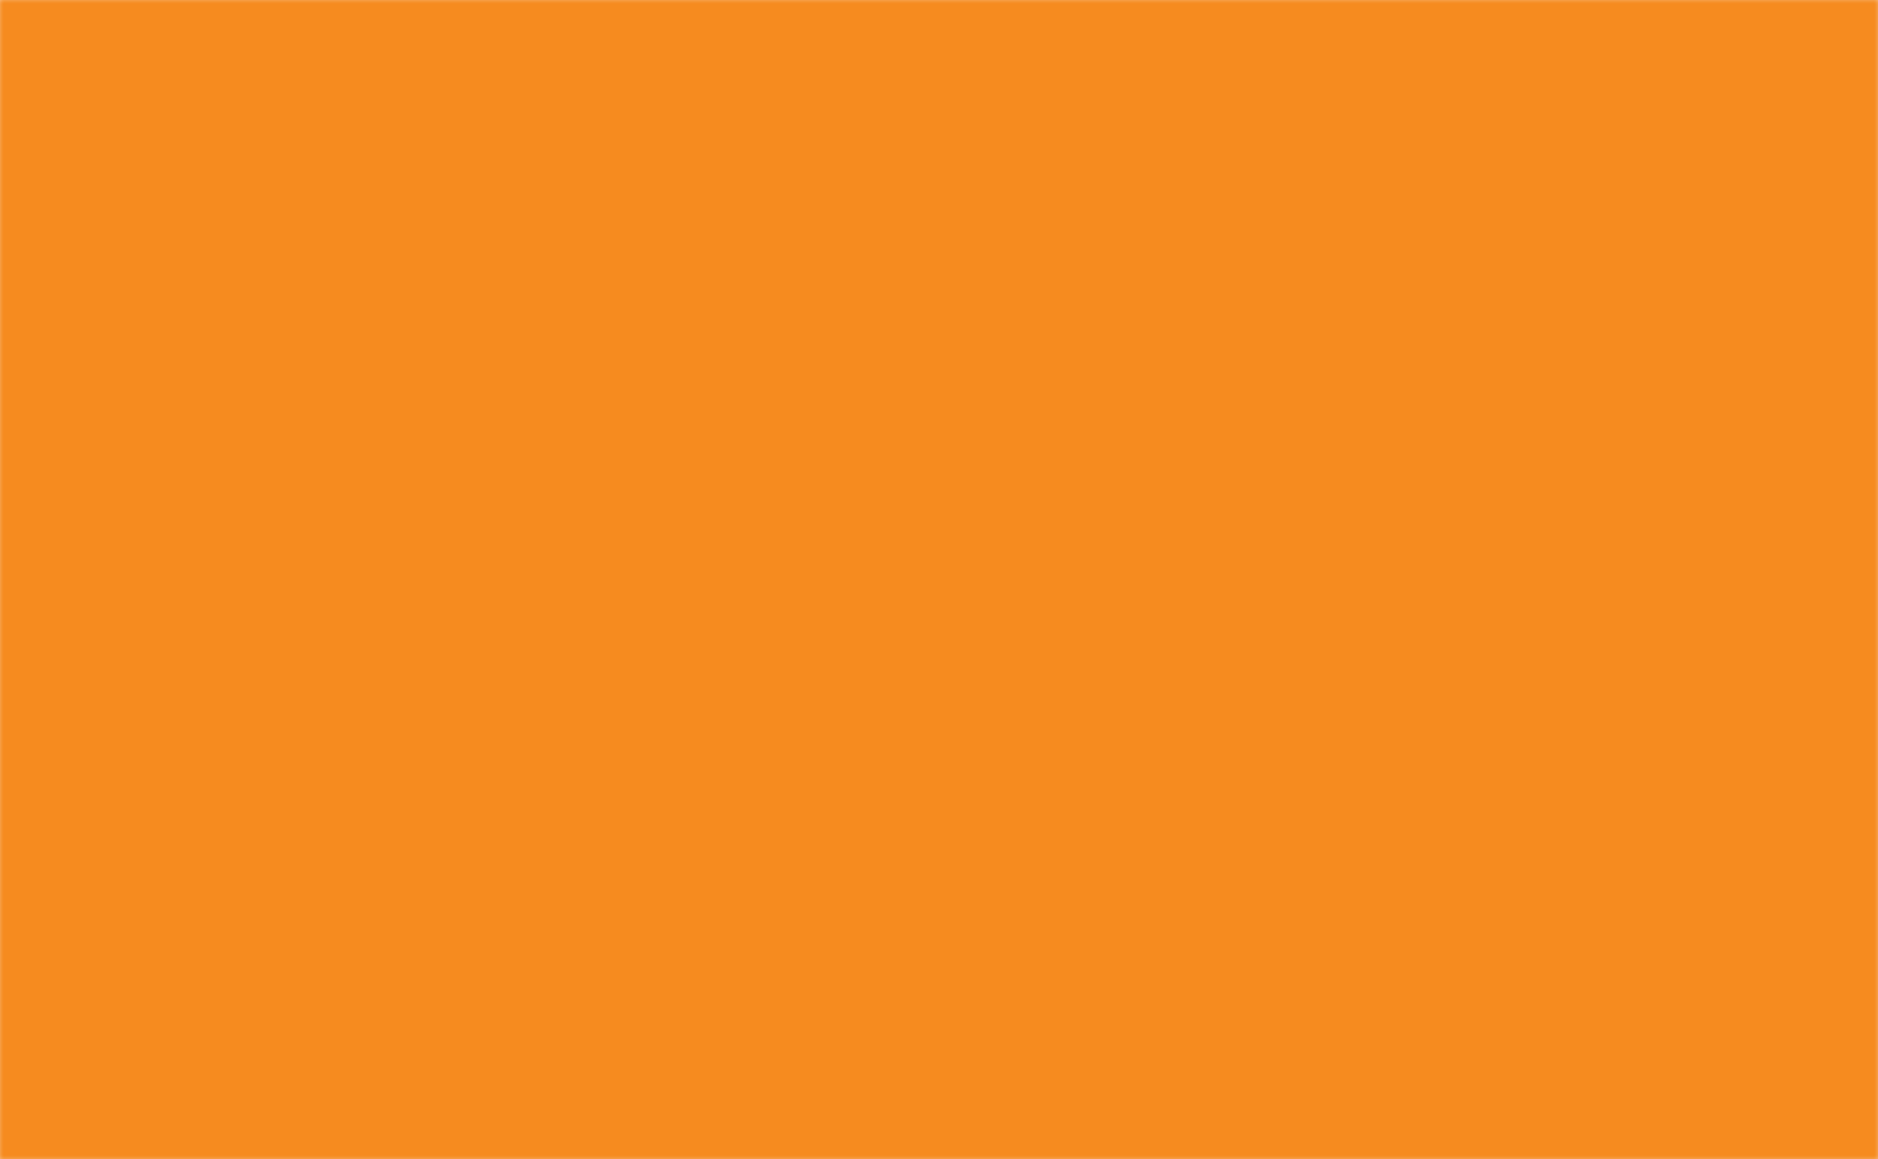 Orange-background.png